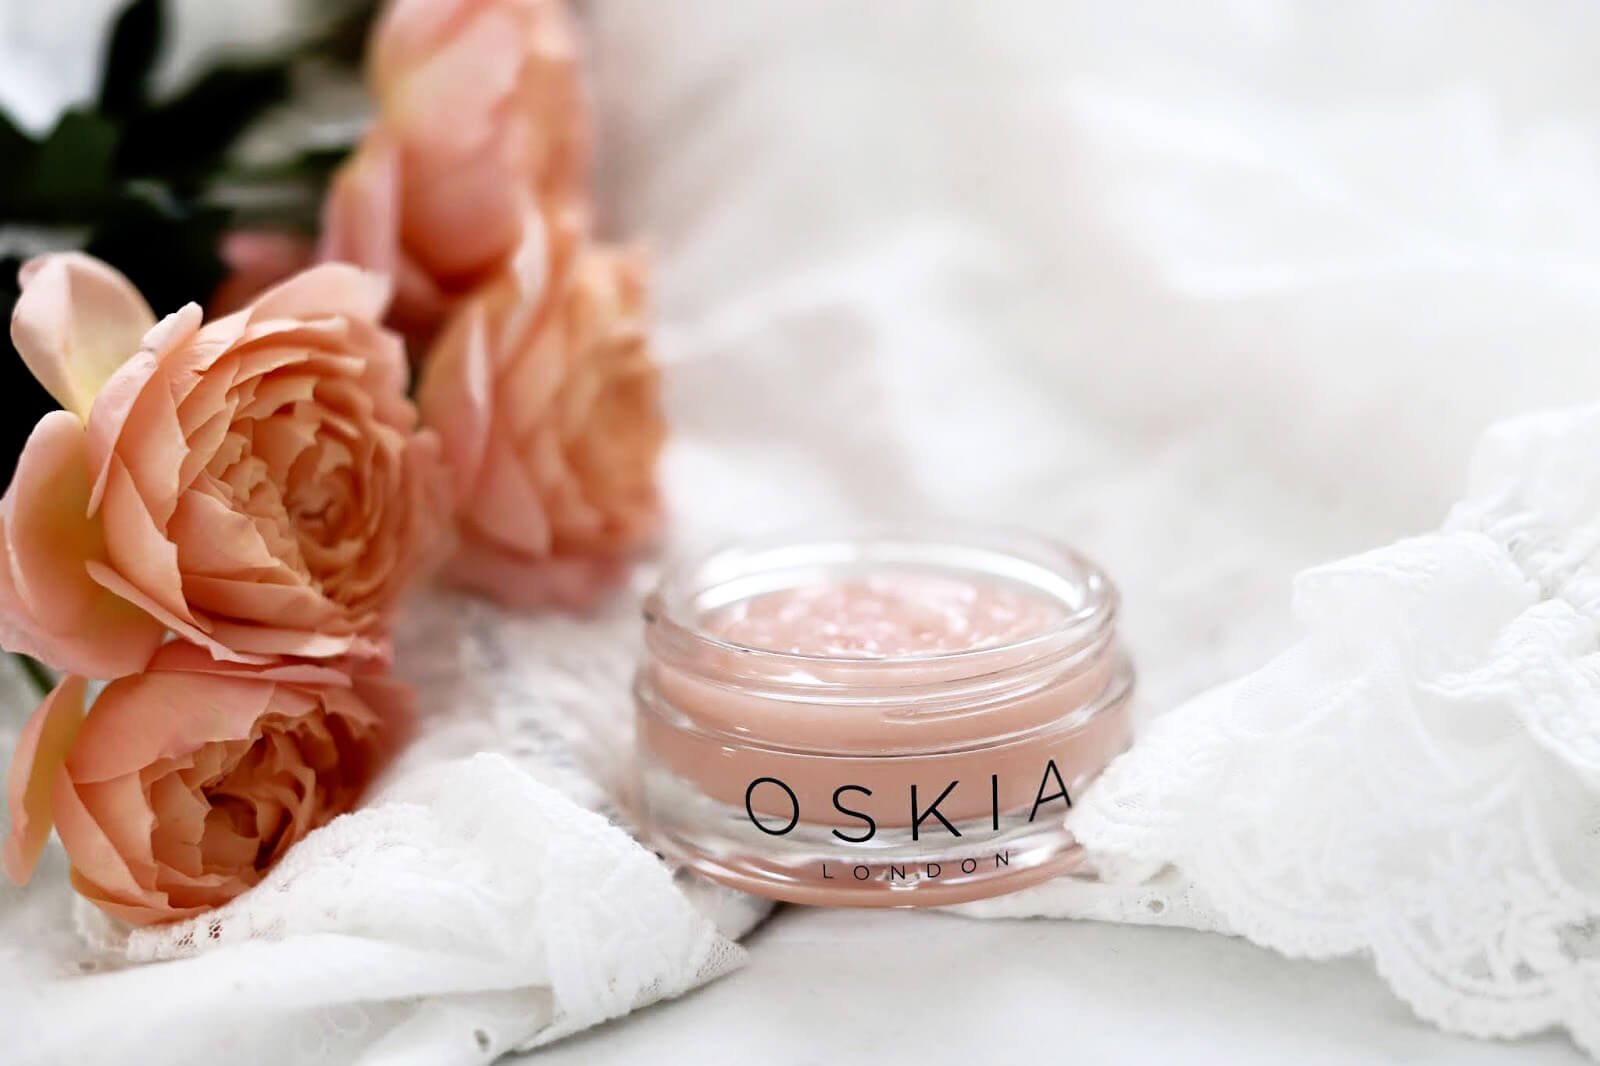 oskia skin care soins visage compositions avis test